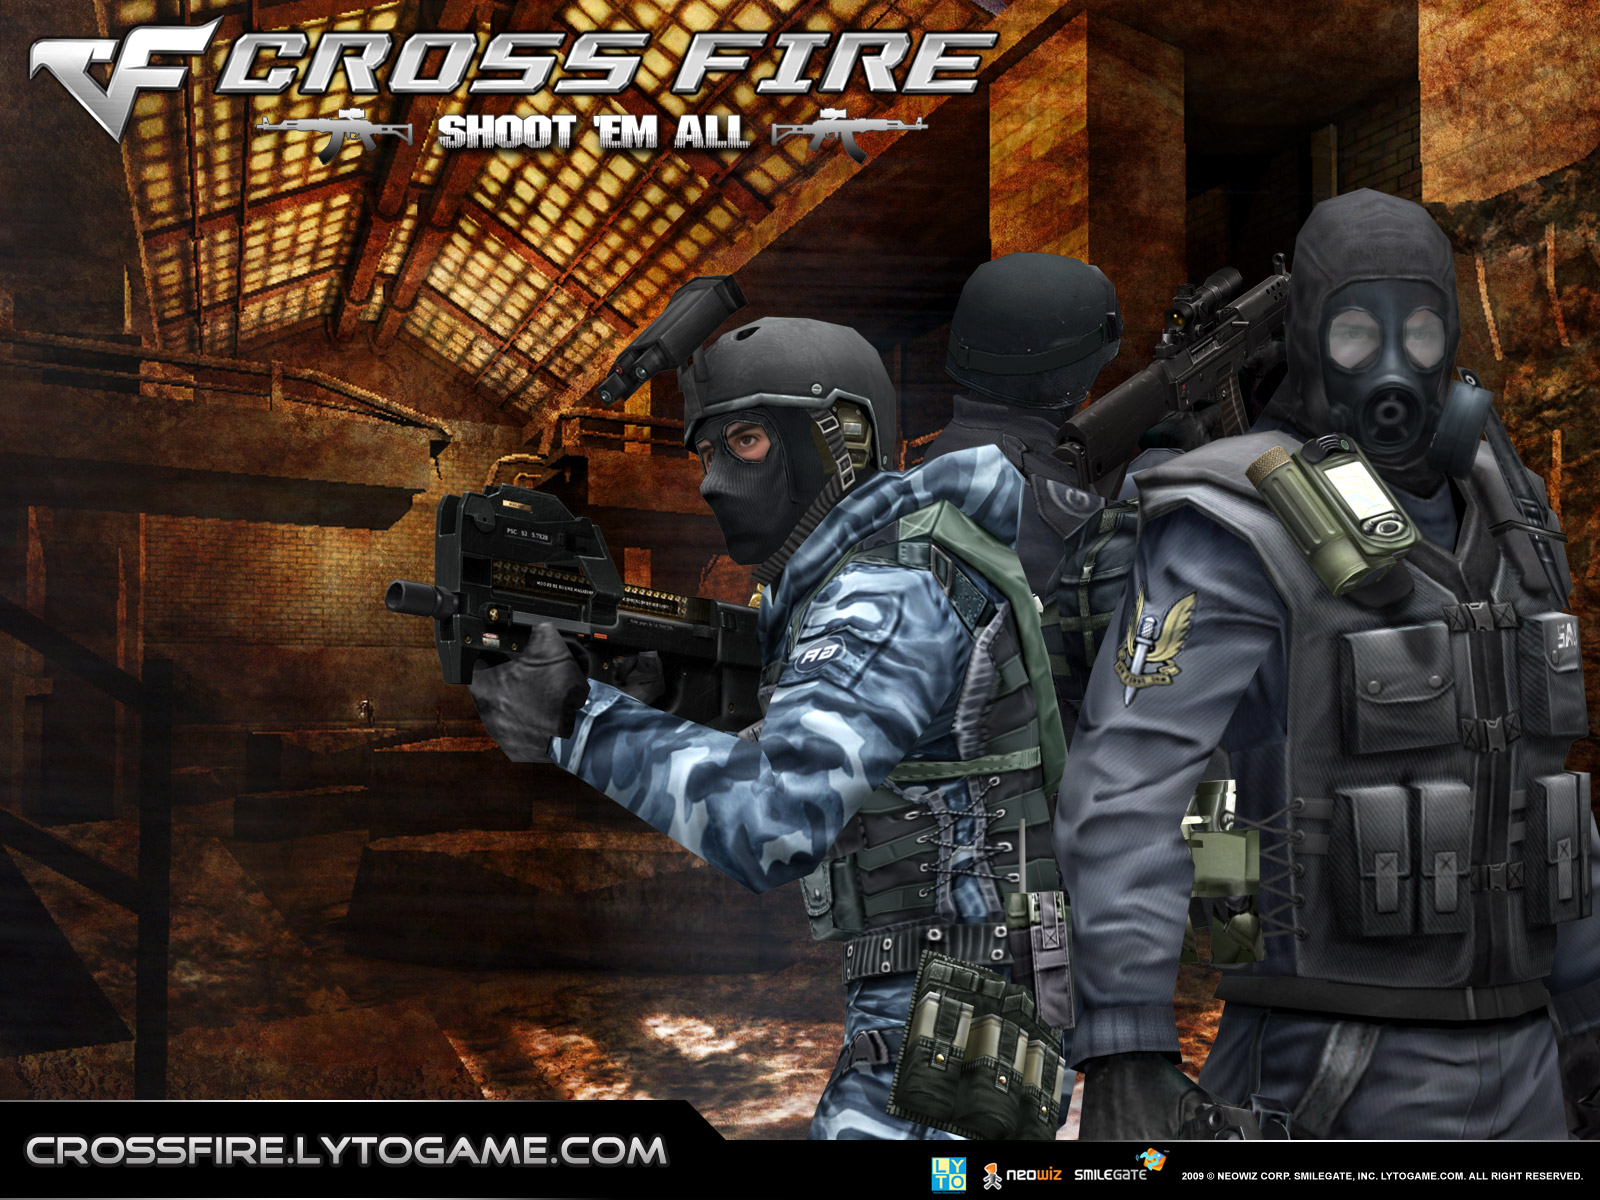 wallpaper crossfire collection 2011 - photo #26